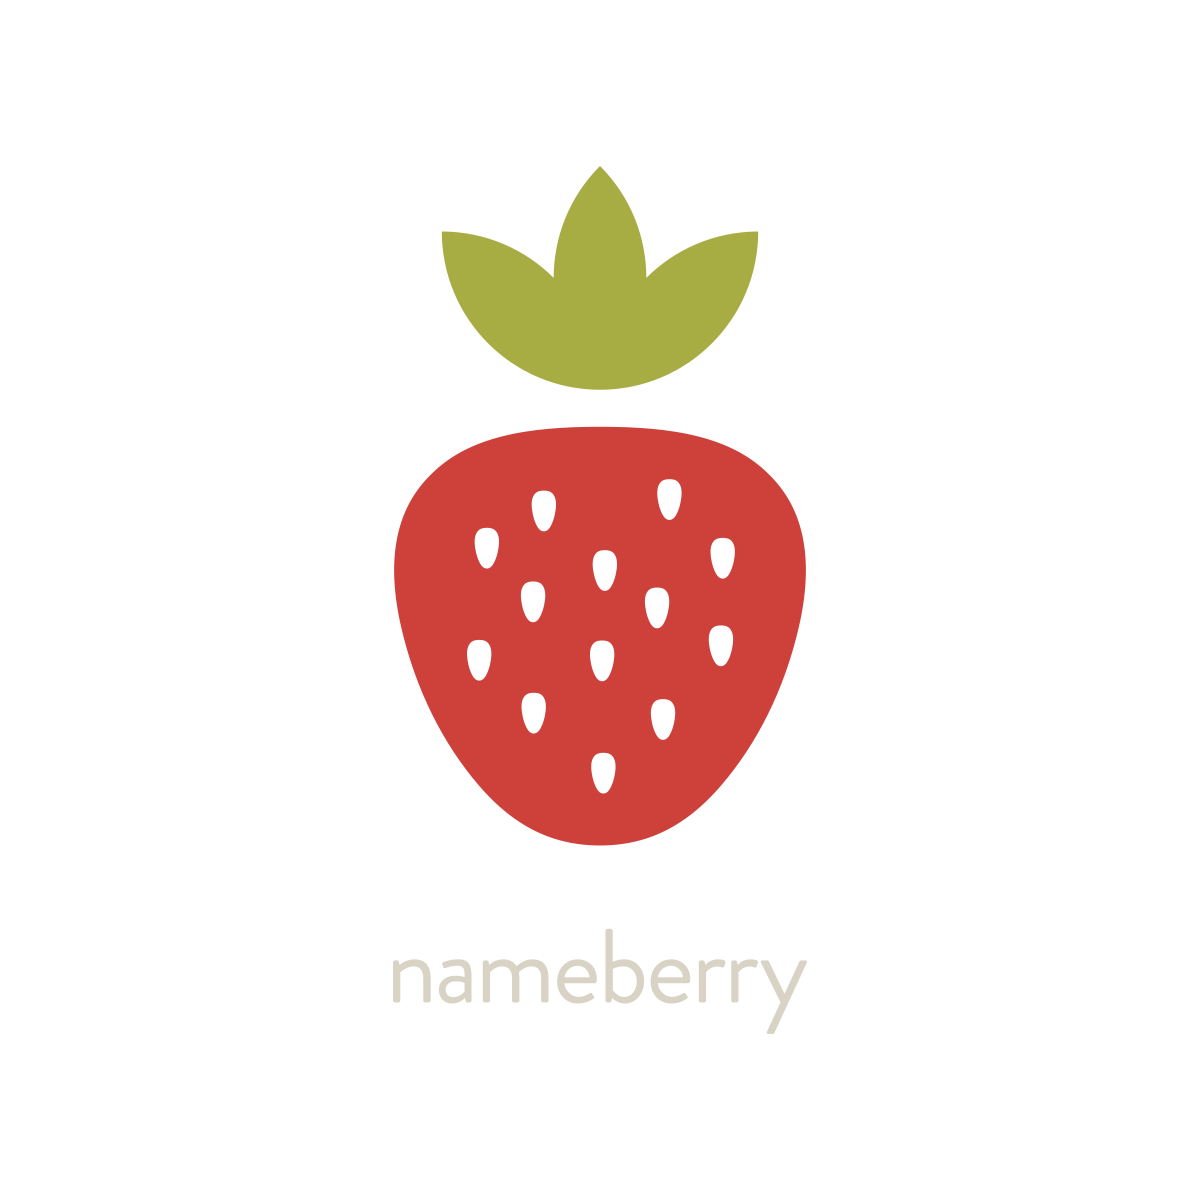 nameberry.001.png